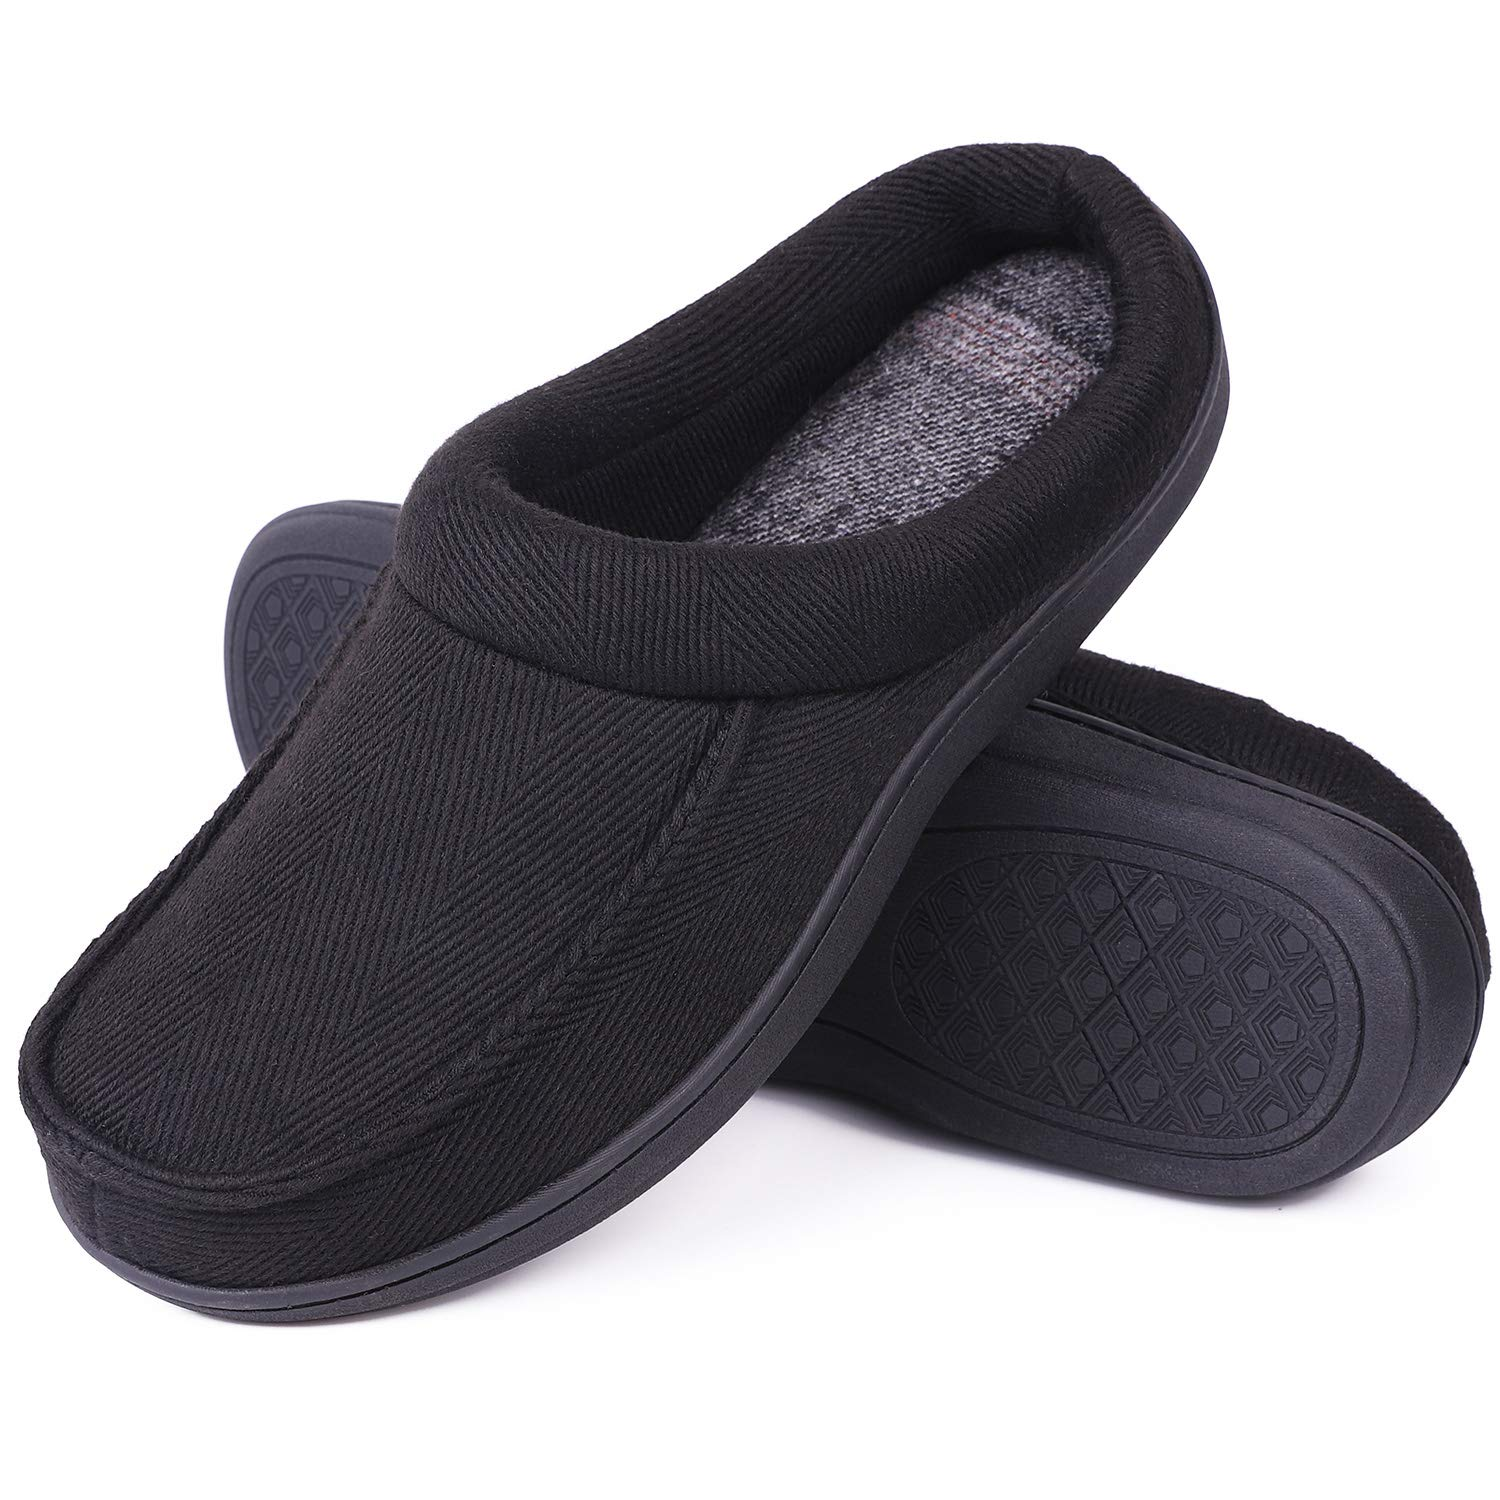 f2a8f944d34fe LongBay Men's Memory Foam Clog Slippers Warm Comfy Wool Cloth Slide House  Shoes for Indoor & Outdoor Use